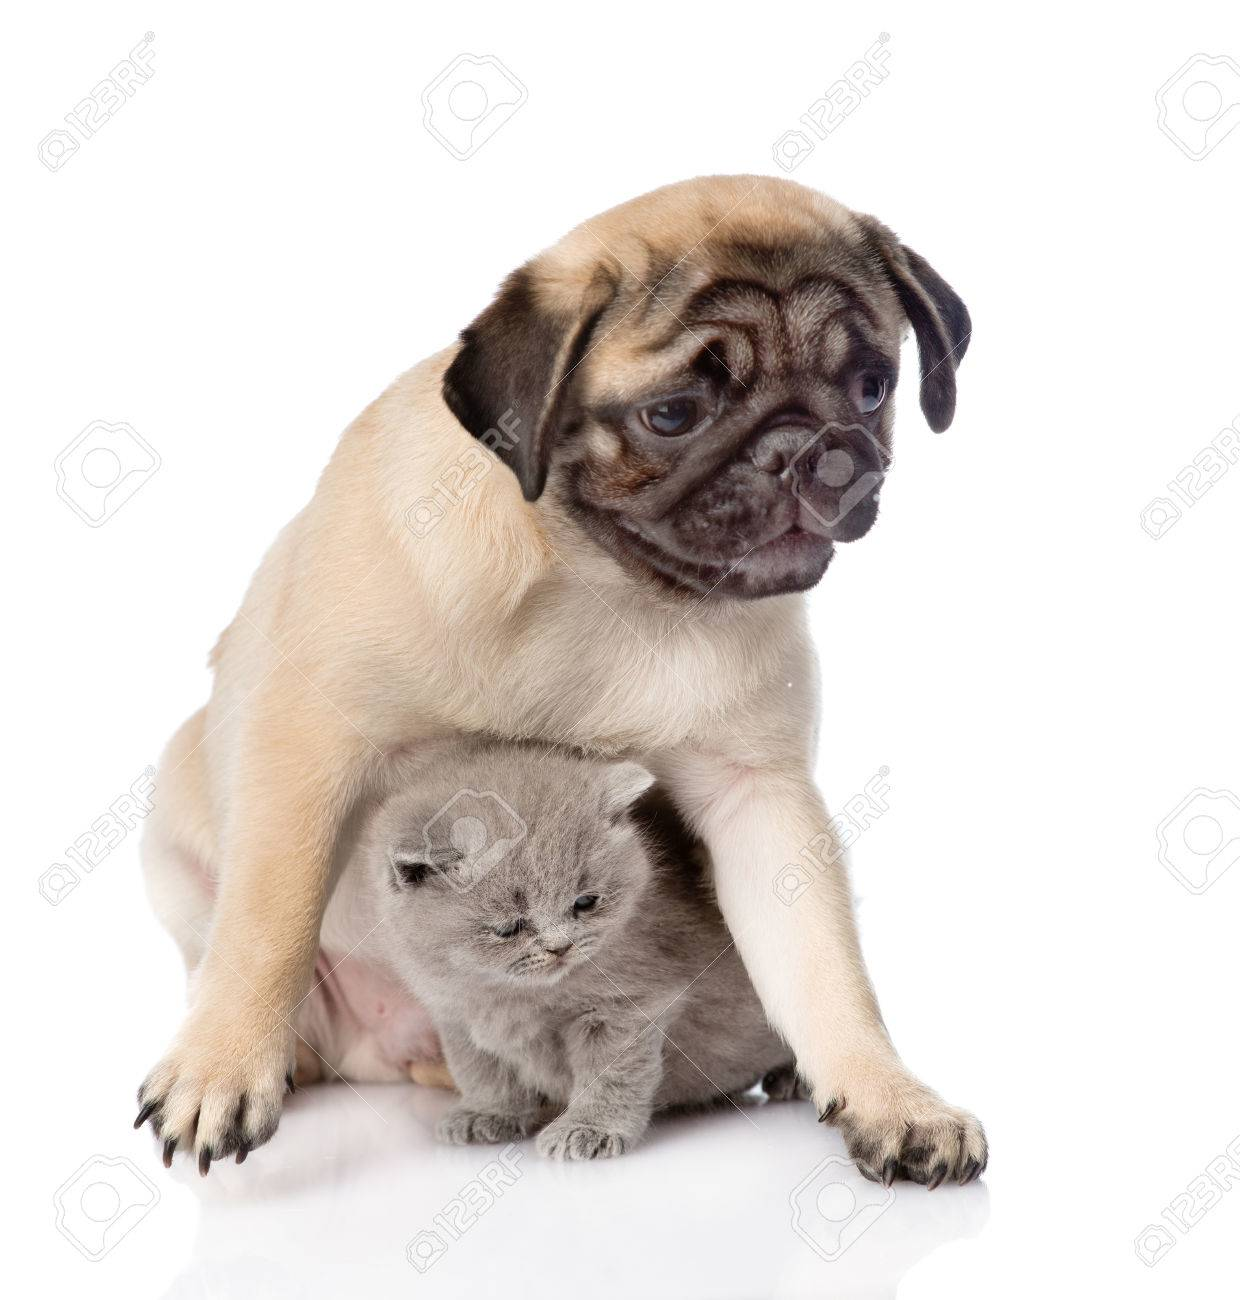 Pug Puppy With Scottish Cat Sitting Together Focus On Cat Isolated